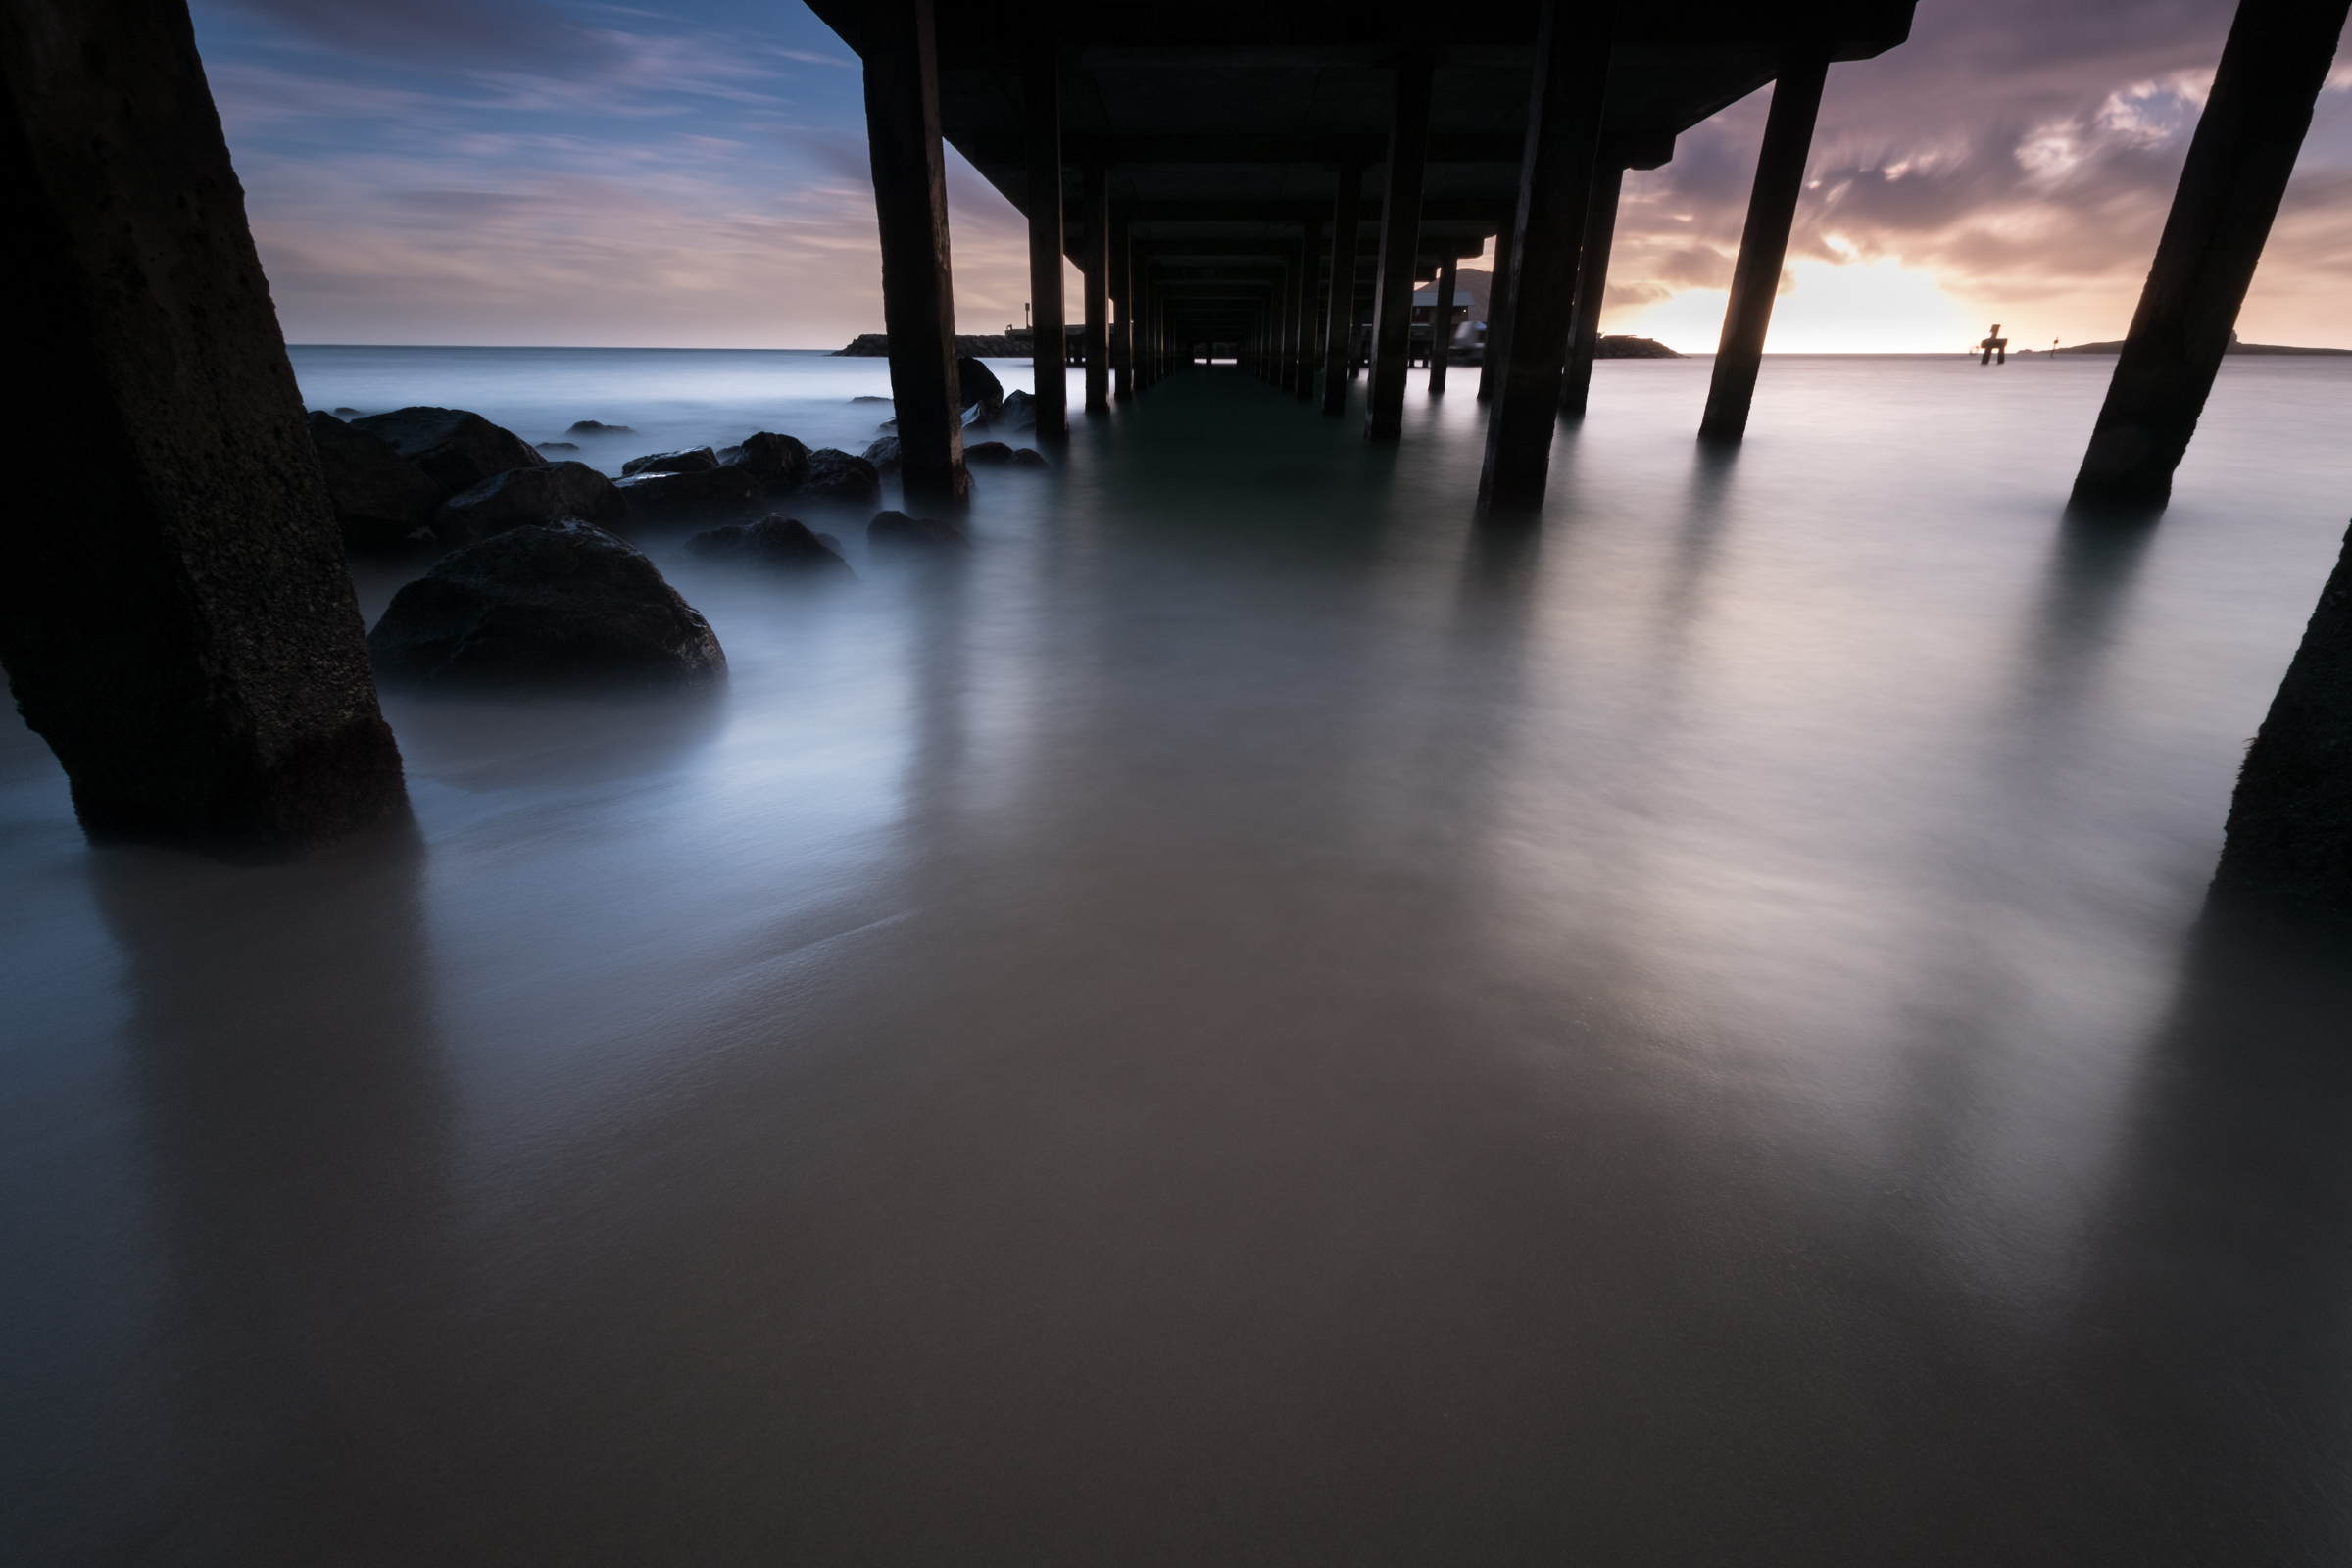 Sunrise at Makai Pier Oahu, Hawaii 07.04.16 6:34am Stacked Lee Big Stopper  Fuji Xpro 2  |  60 sec. |  f/11  |  ISO 200  |  Fujinon 10-24mm f/4  Edited in Lightroom CC 2015  Copyright 2016 Ryan Sakamoto, All rights reserved